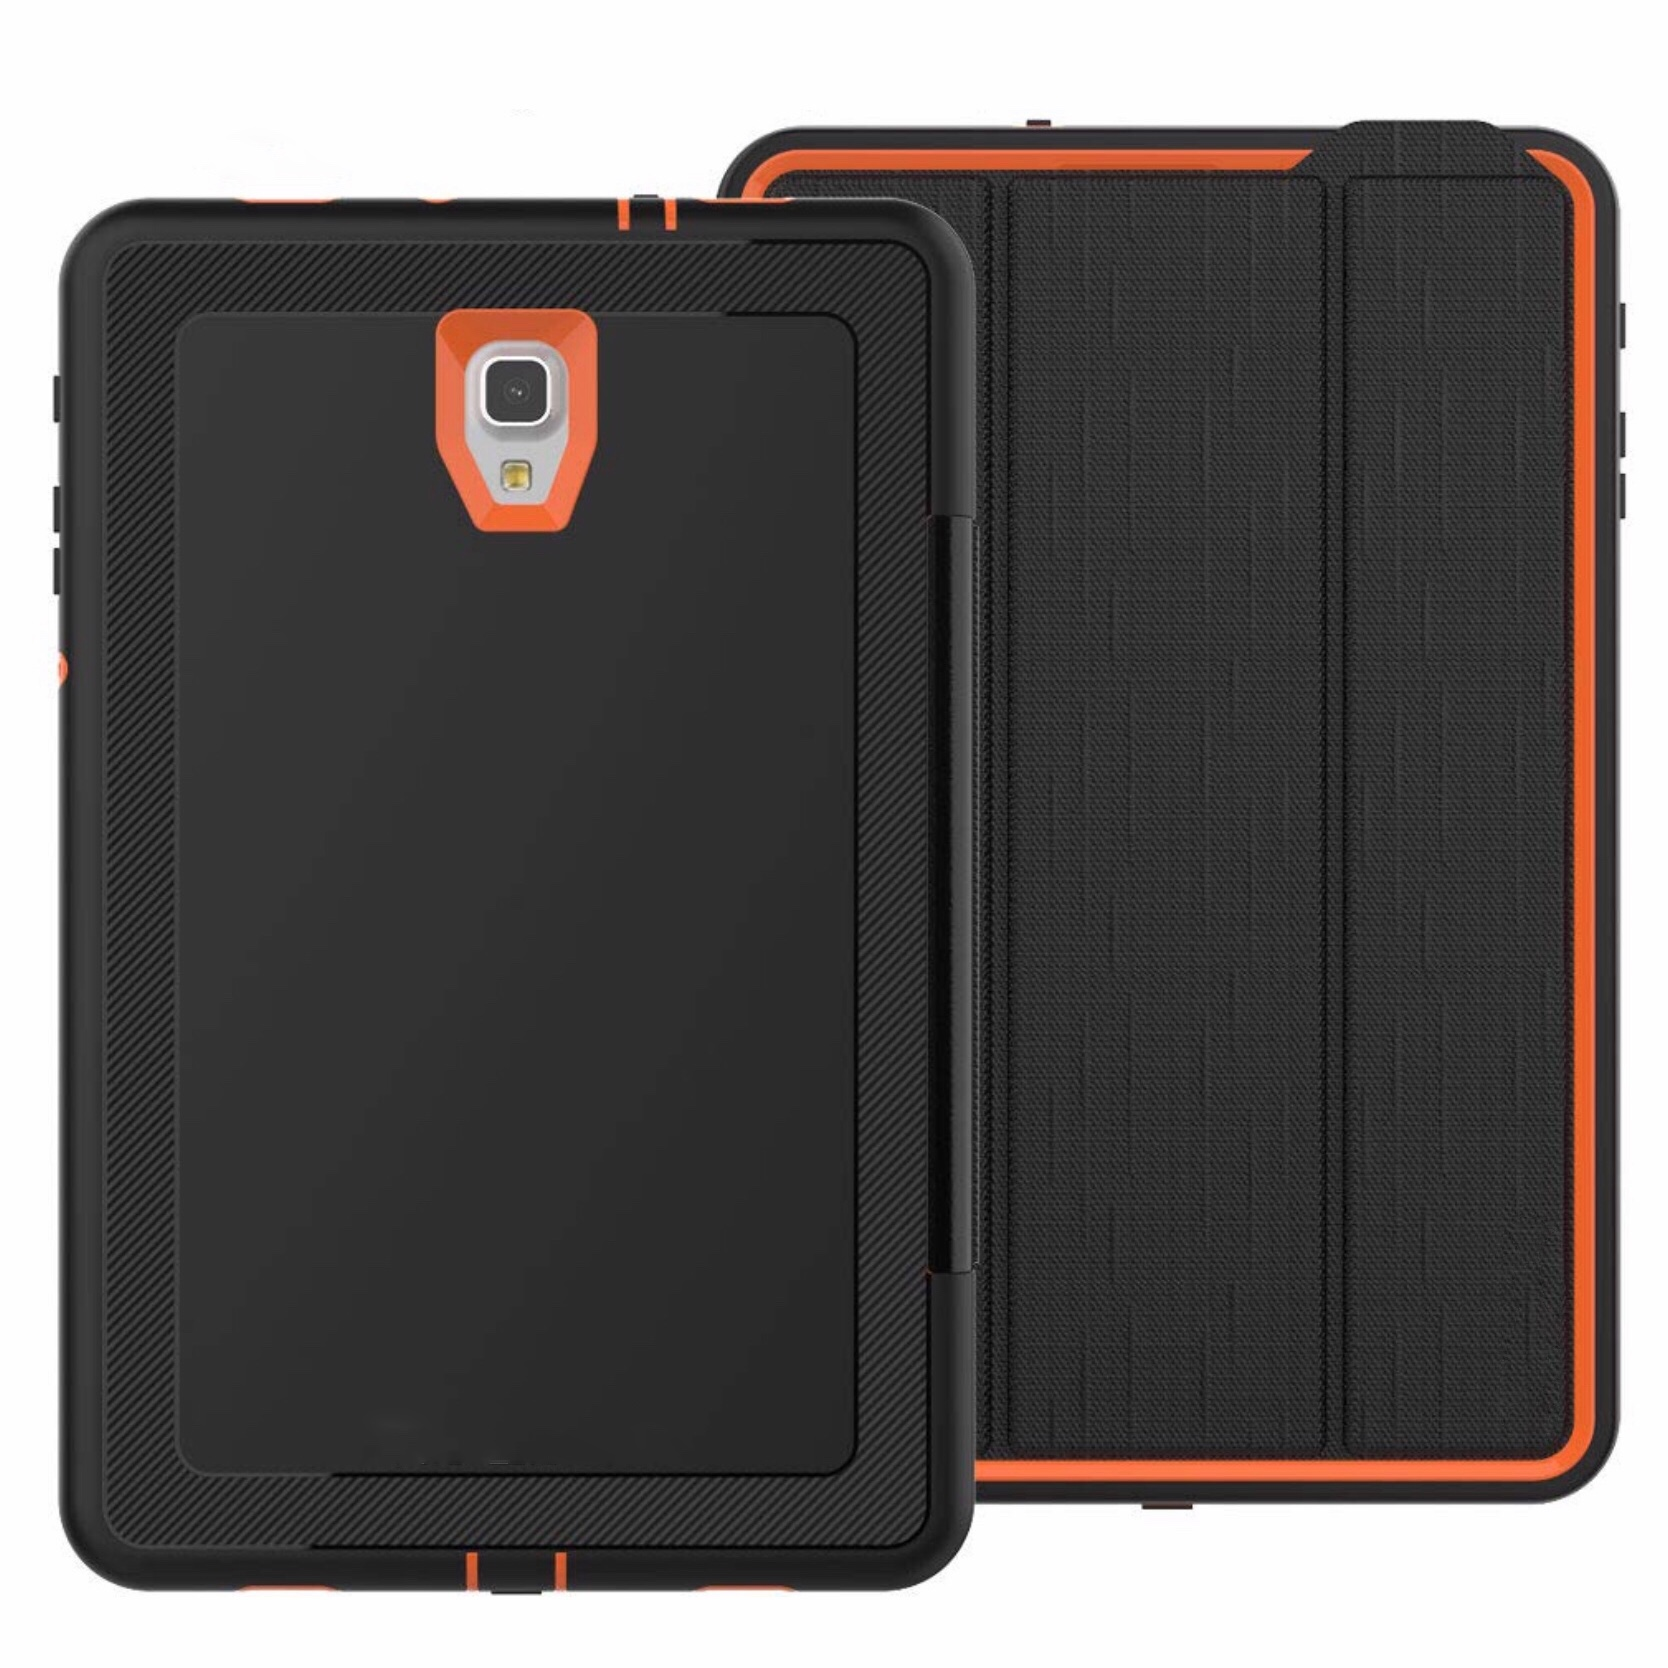 Galaxy TAB A 10.5 pouces Etui Folio de protection Sidney Orange et Noir